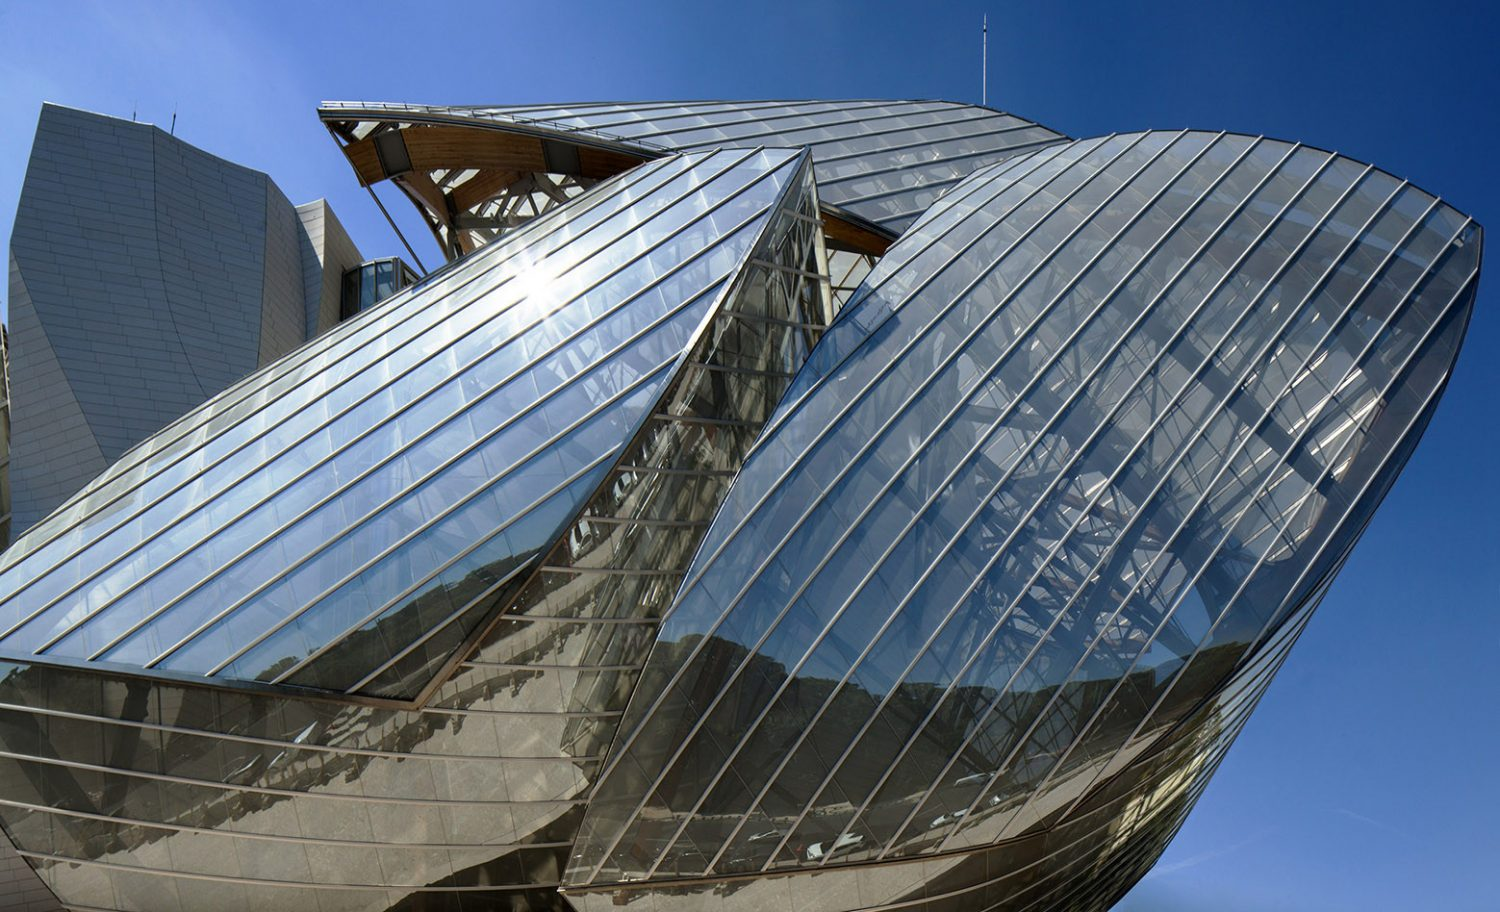 Fondation Louis Vuitton - Gehry Partners - Top 5 - IGS Magazine - Glass - 4